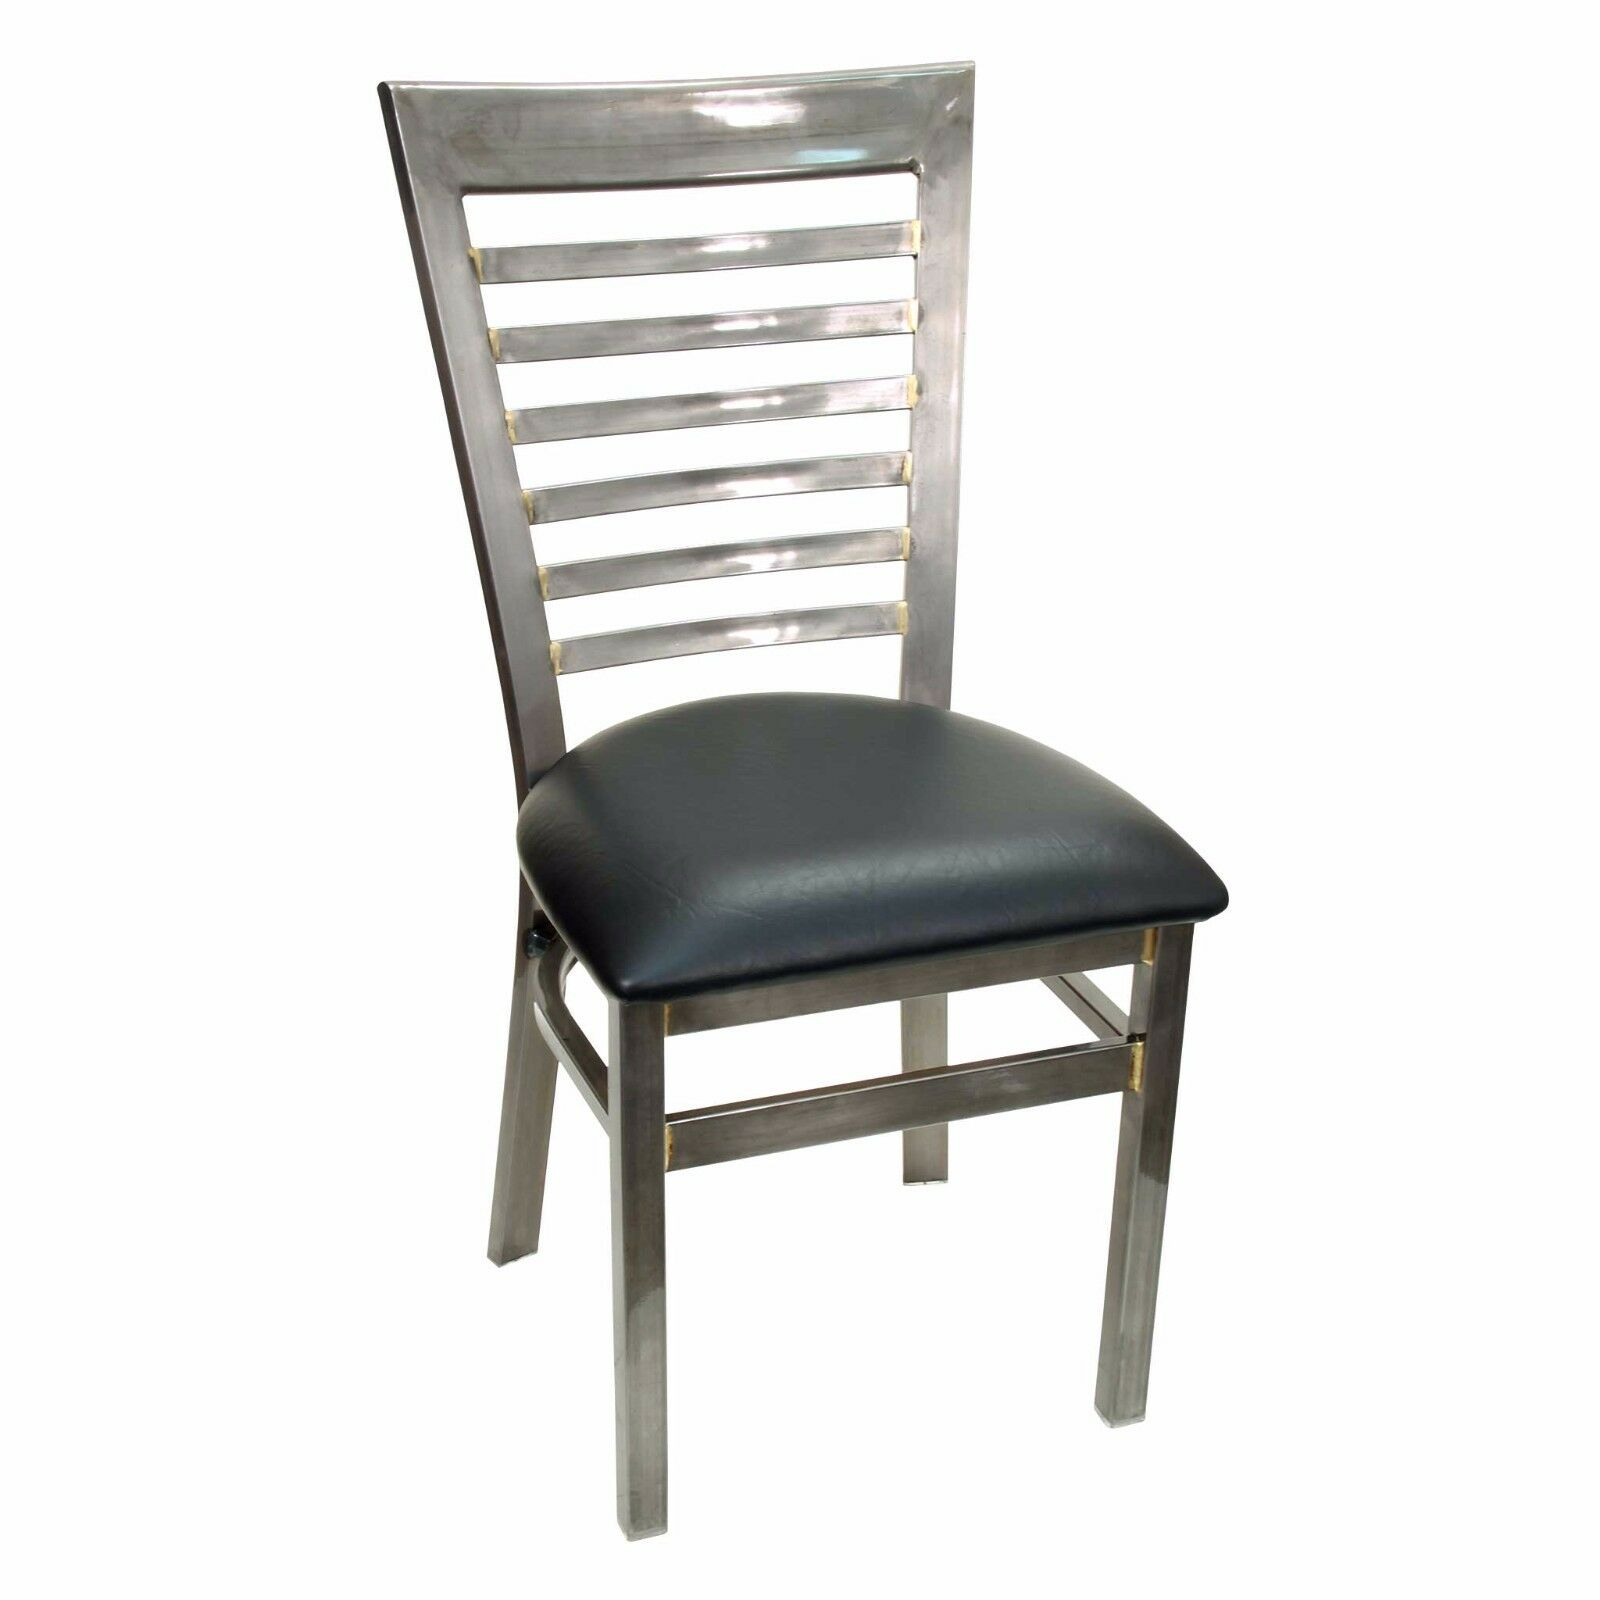 Details About New Gladiator Clear Coat Full Ladder Back Metal Restaurant Chair W Black Seat